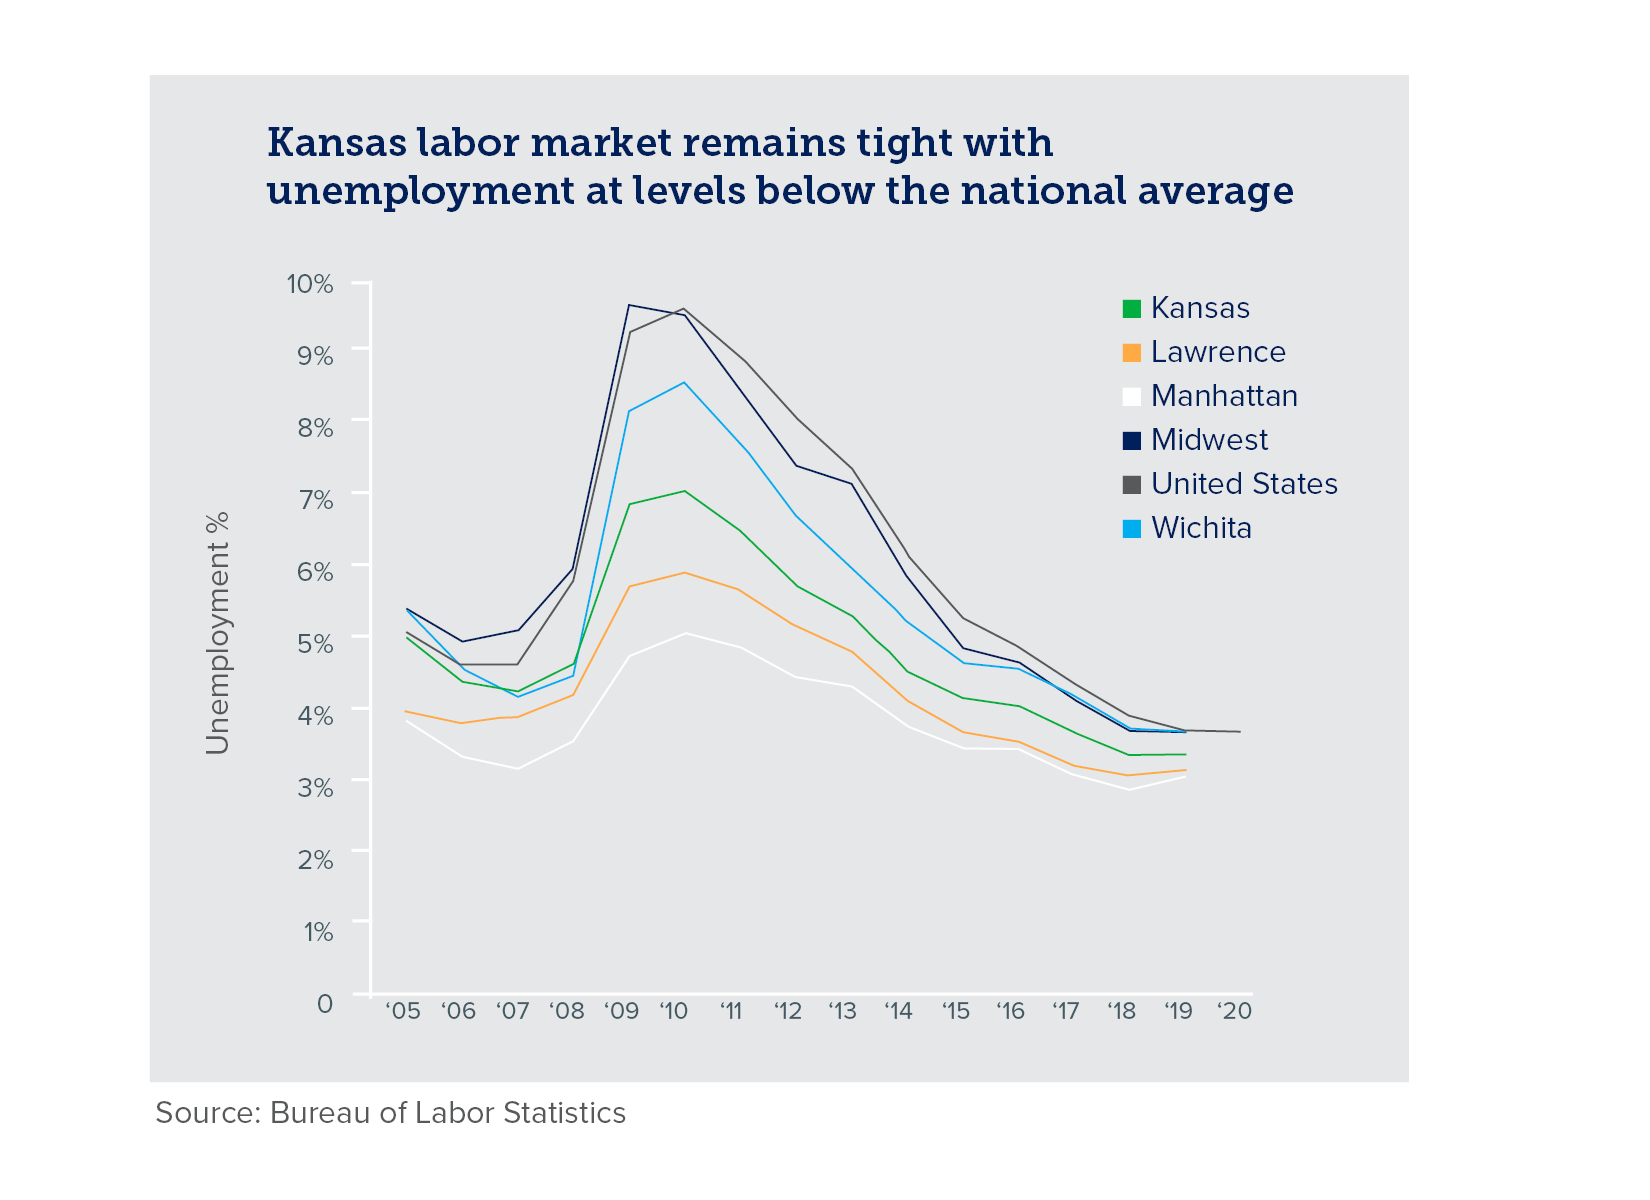 Chart of Kansas unemployment percentage over time